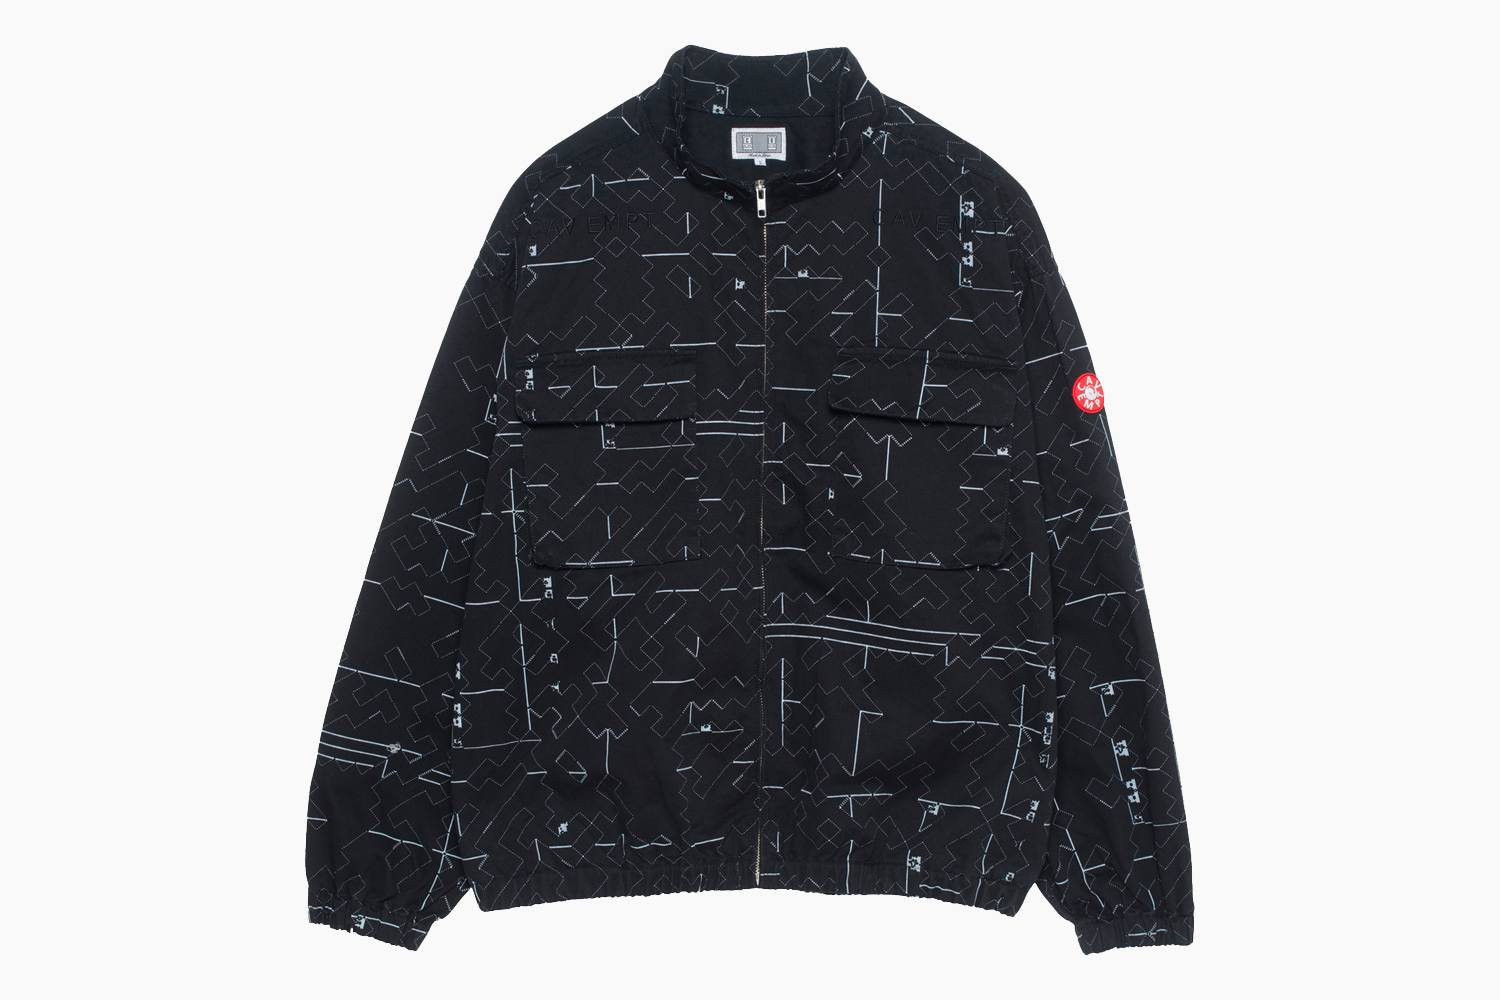 Cav Empt FW19 Ninth Drop